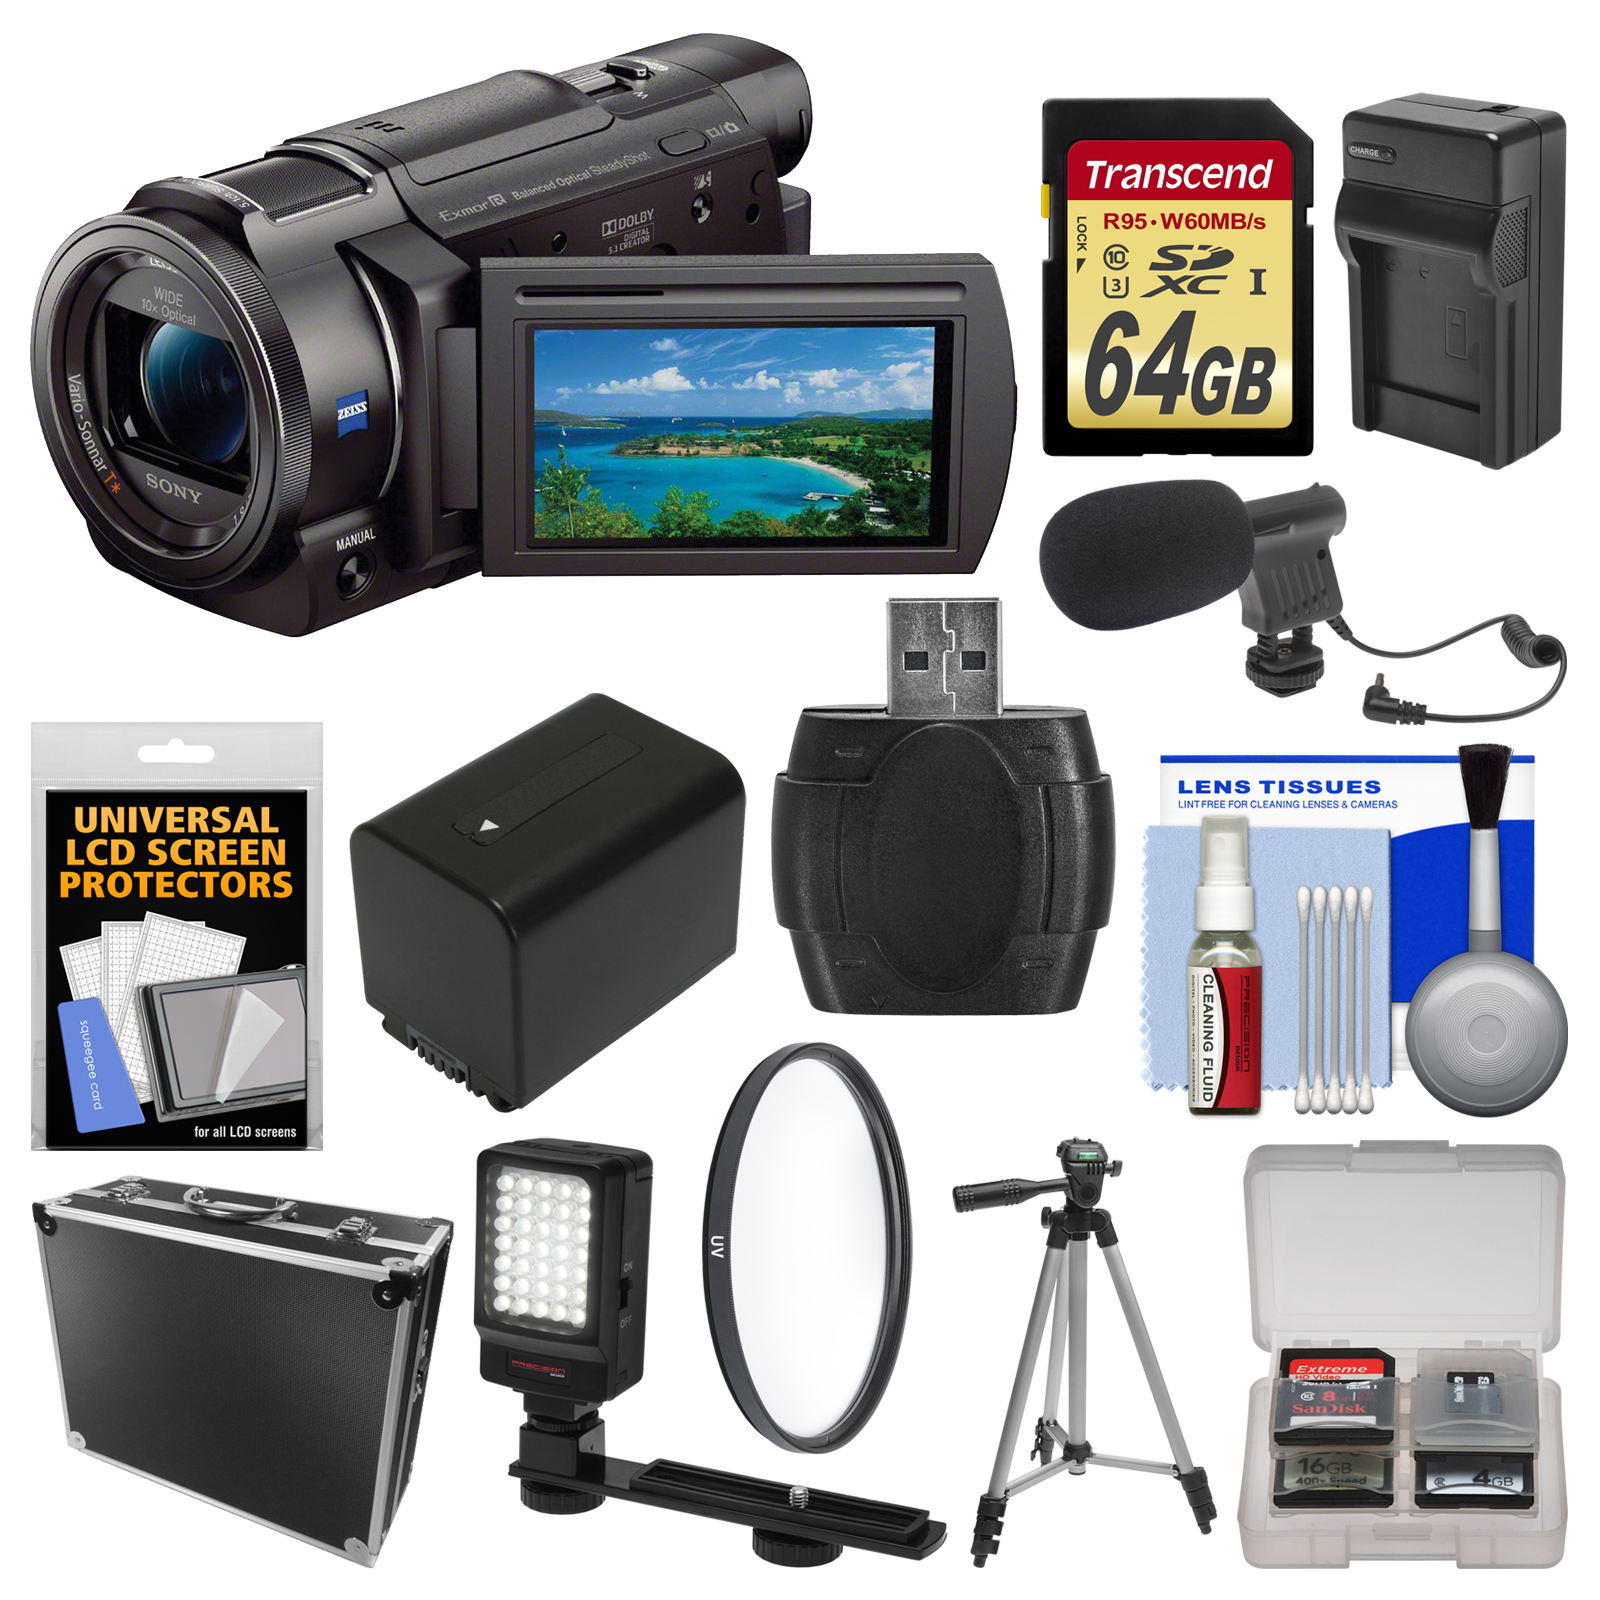 Sony Handycam FDR-AX33 Wi-Fi 4K Ultra HD Video Camera Camcorder with 64GB Card + Case + LED Light + Microphone... by Sony